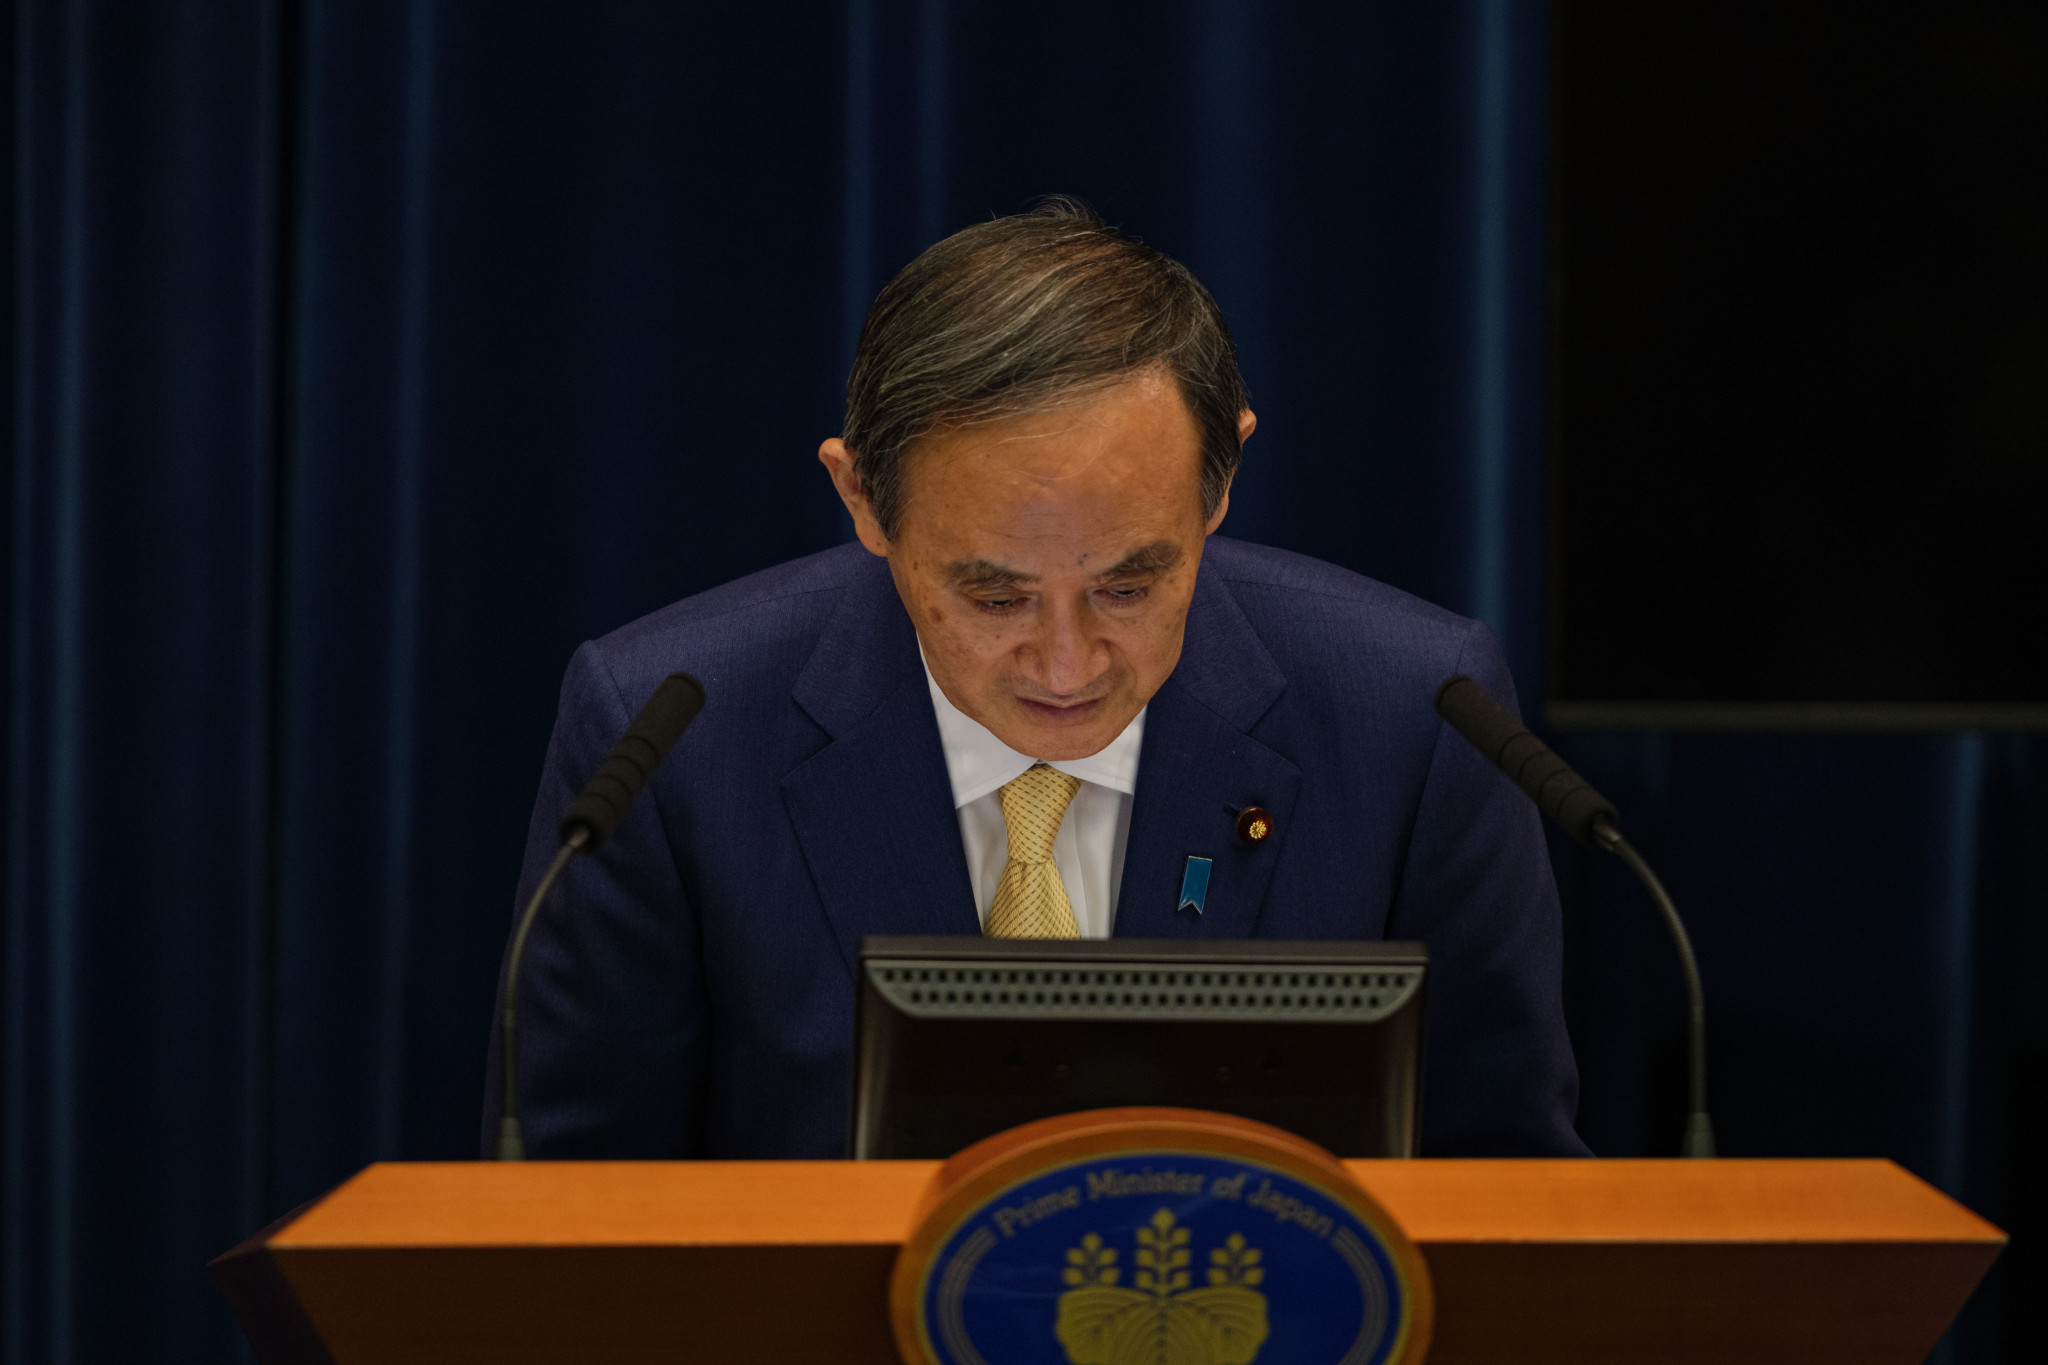 Japanese Prime Minister Yoshihide Suga gave equal part fine and sorry words at the United Nations General Assembly following the COVID-impacted Tokyo 2020 Olympic Games ©Getty Images